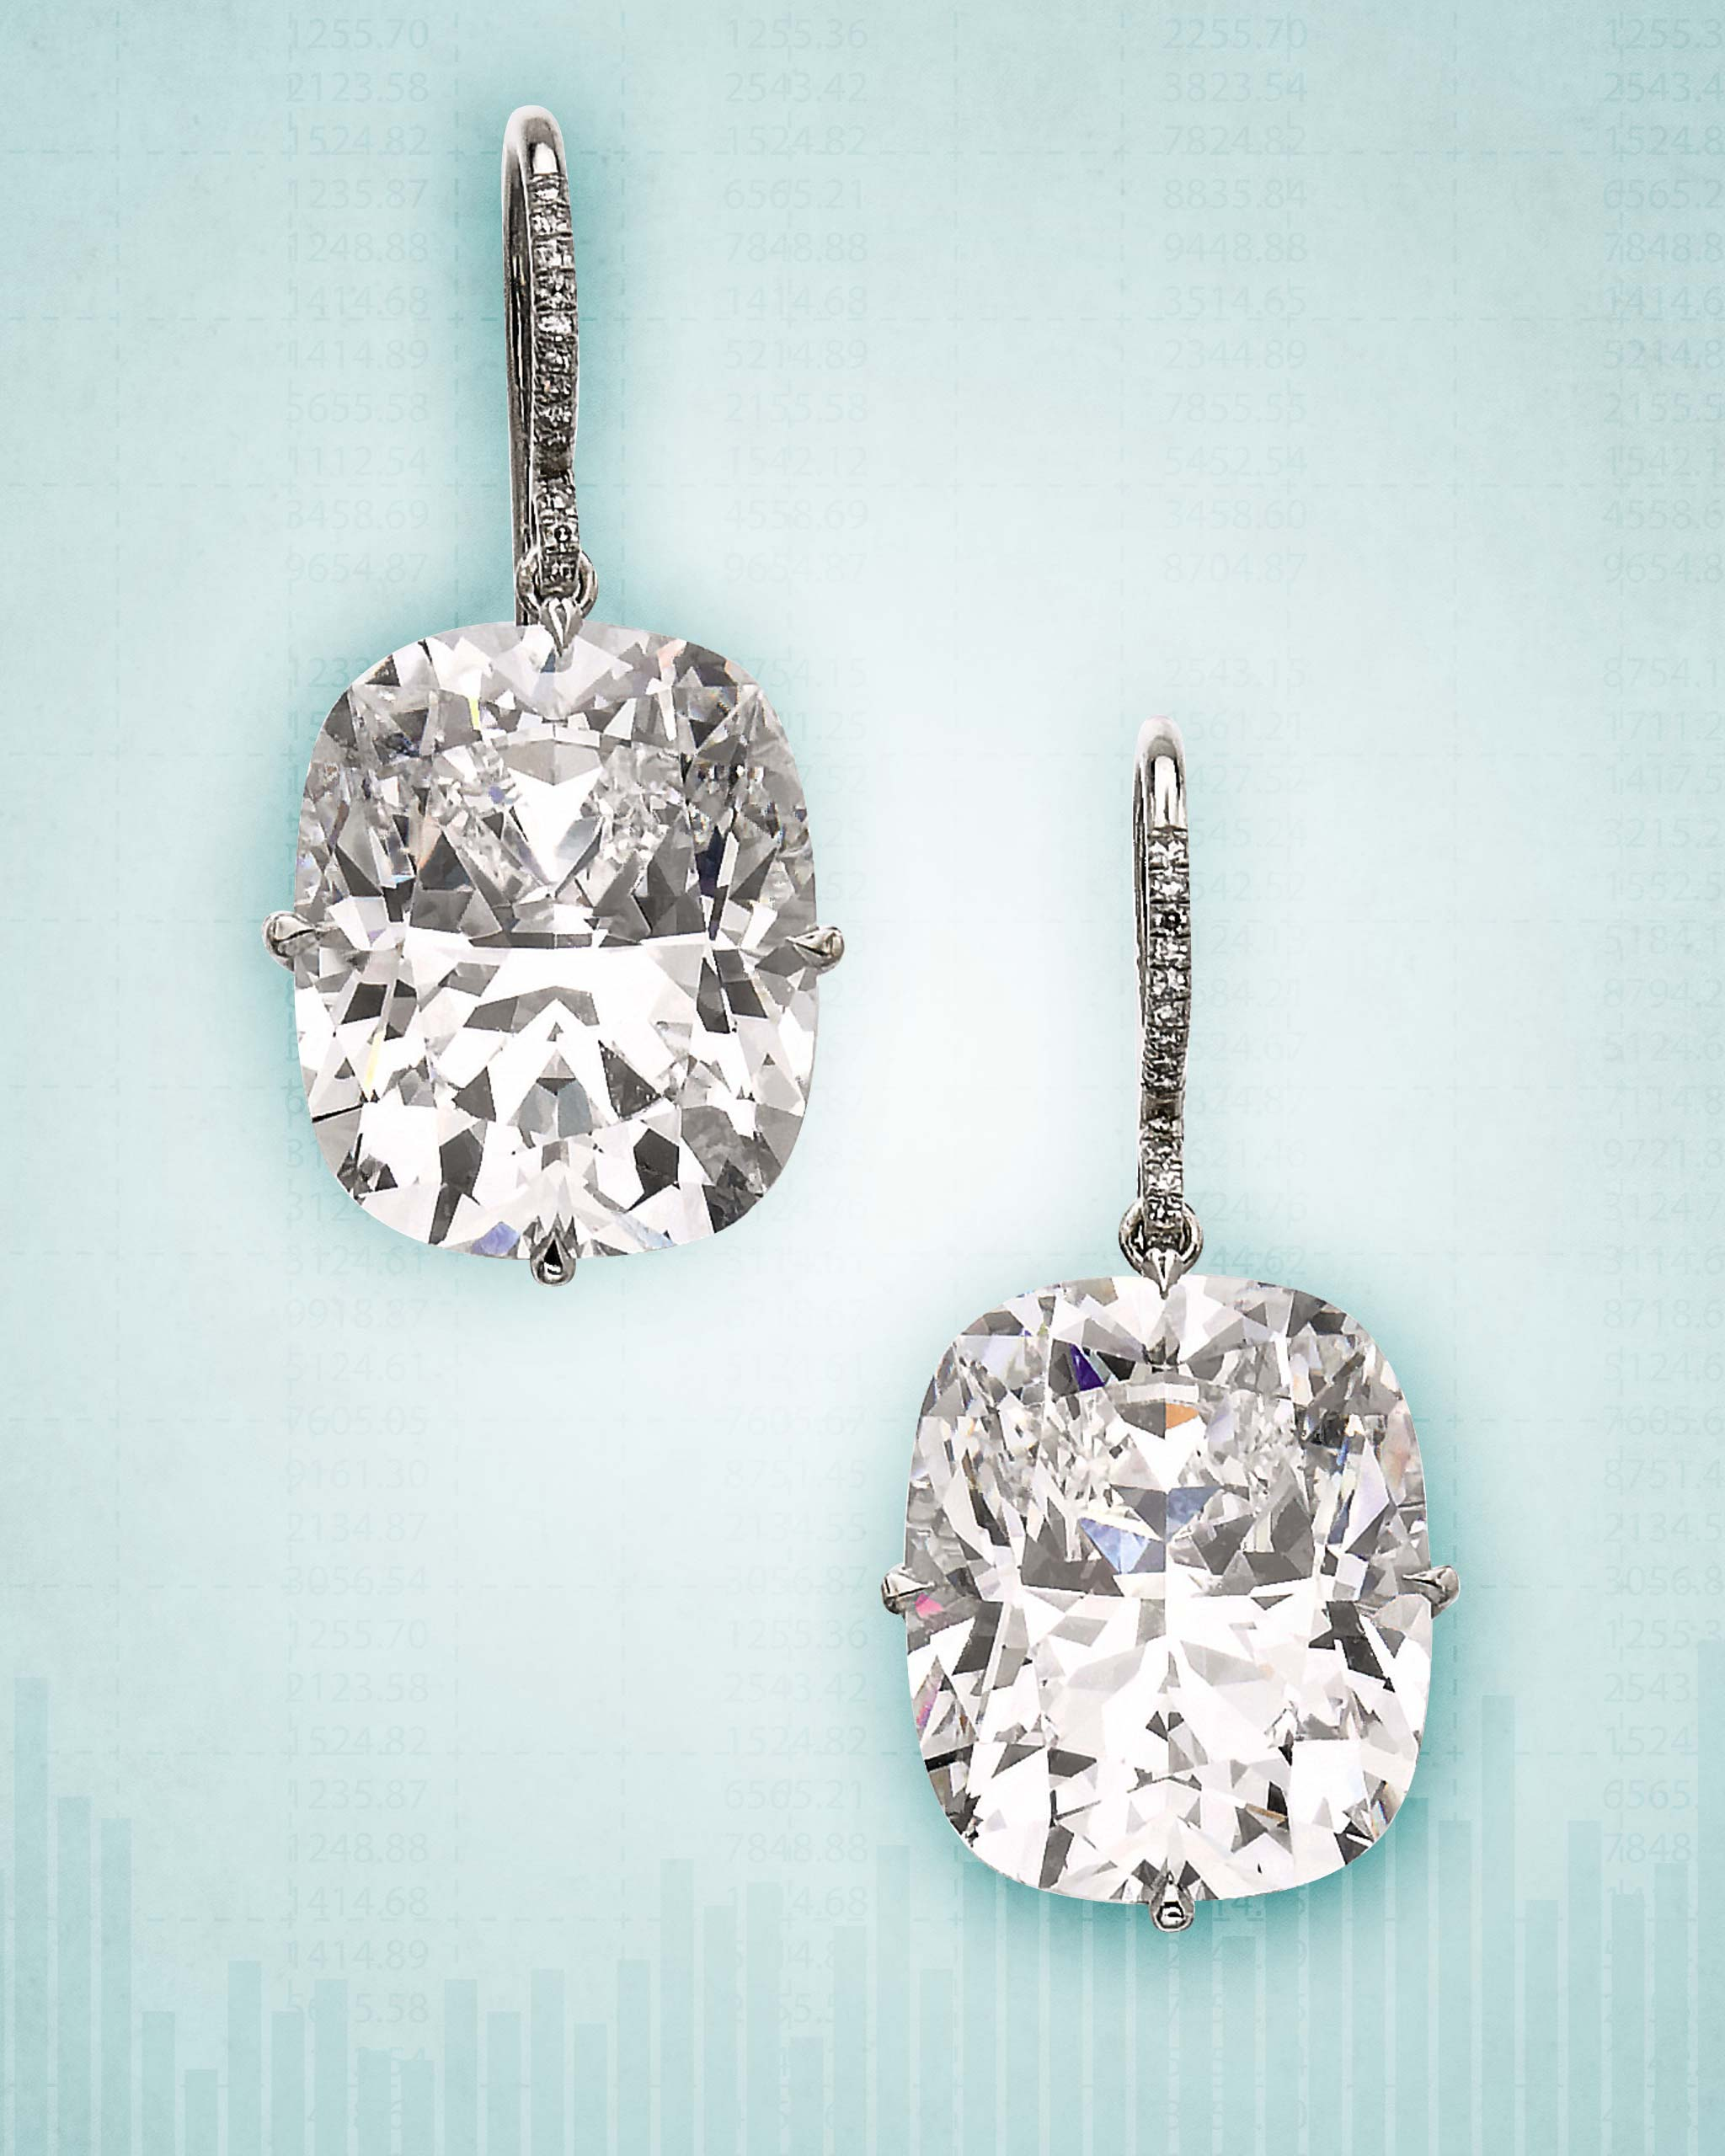 13.5-carat D-color cushion cut diamond earrings sold at the 2020 Sotheby's jewelry auction